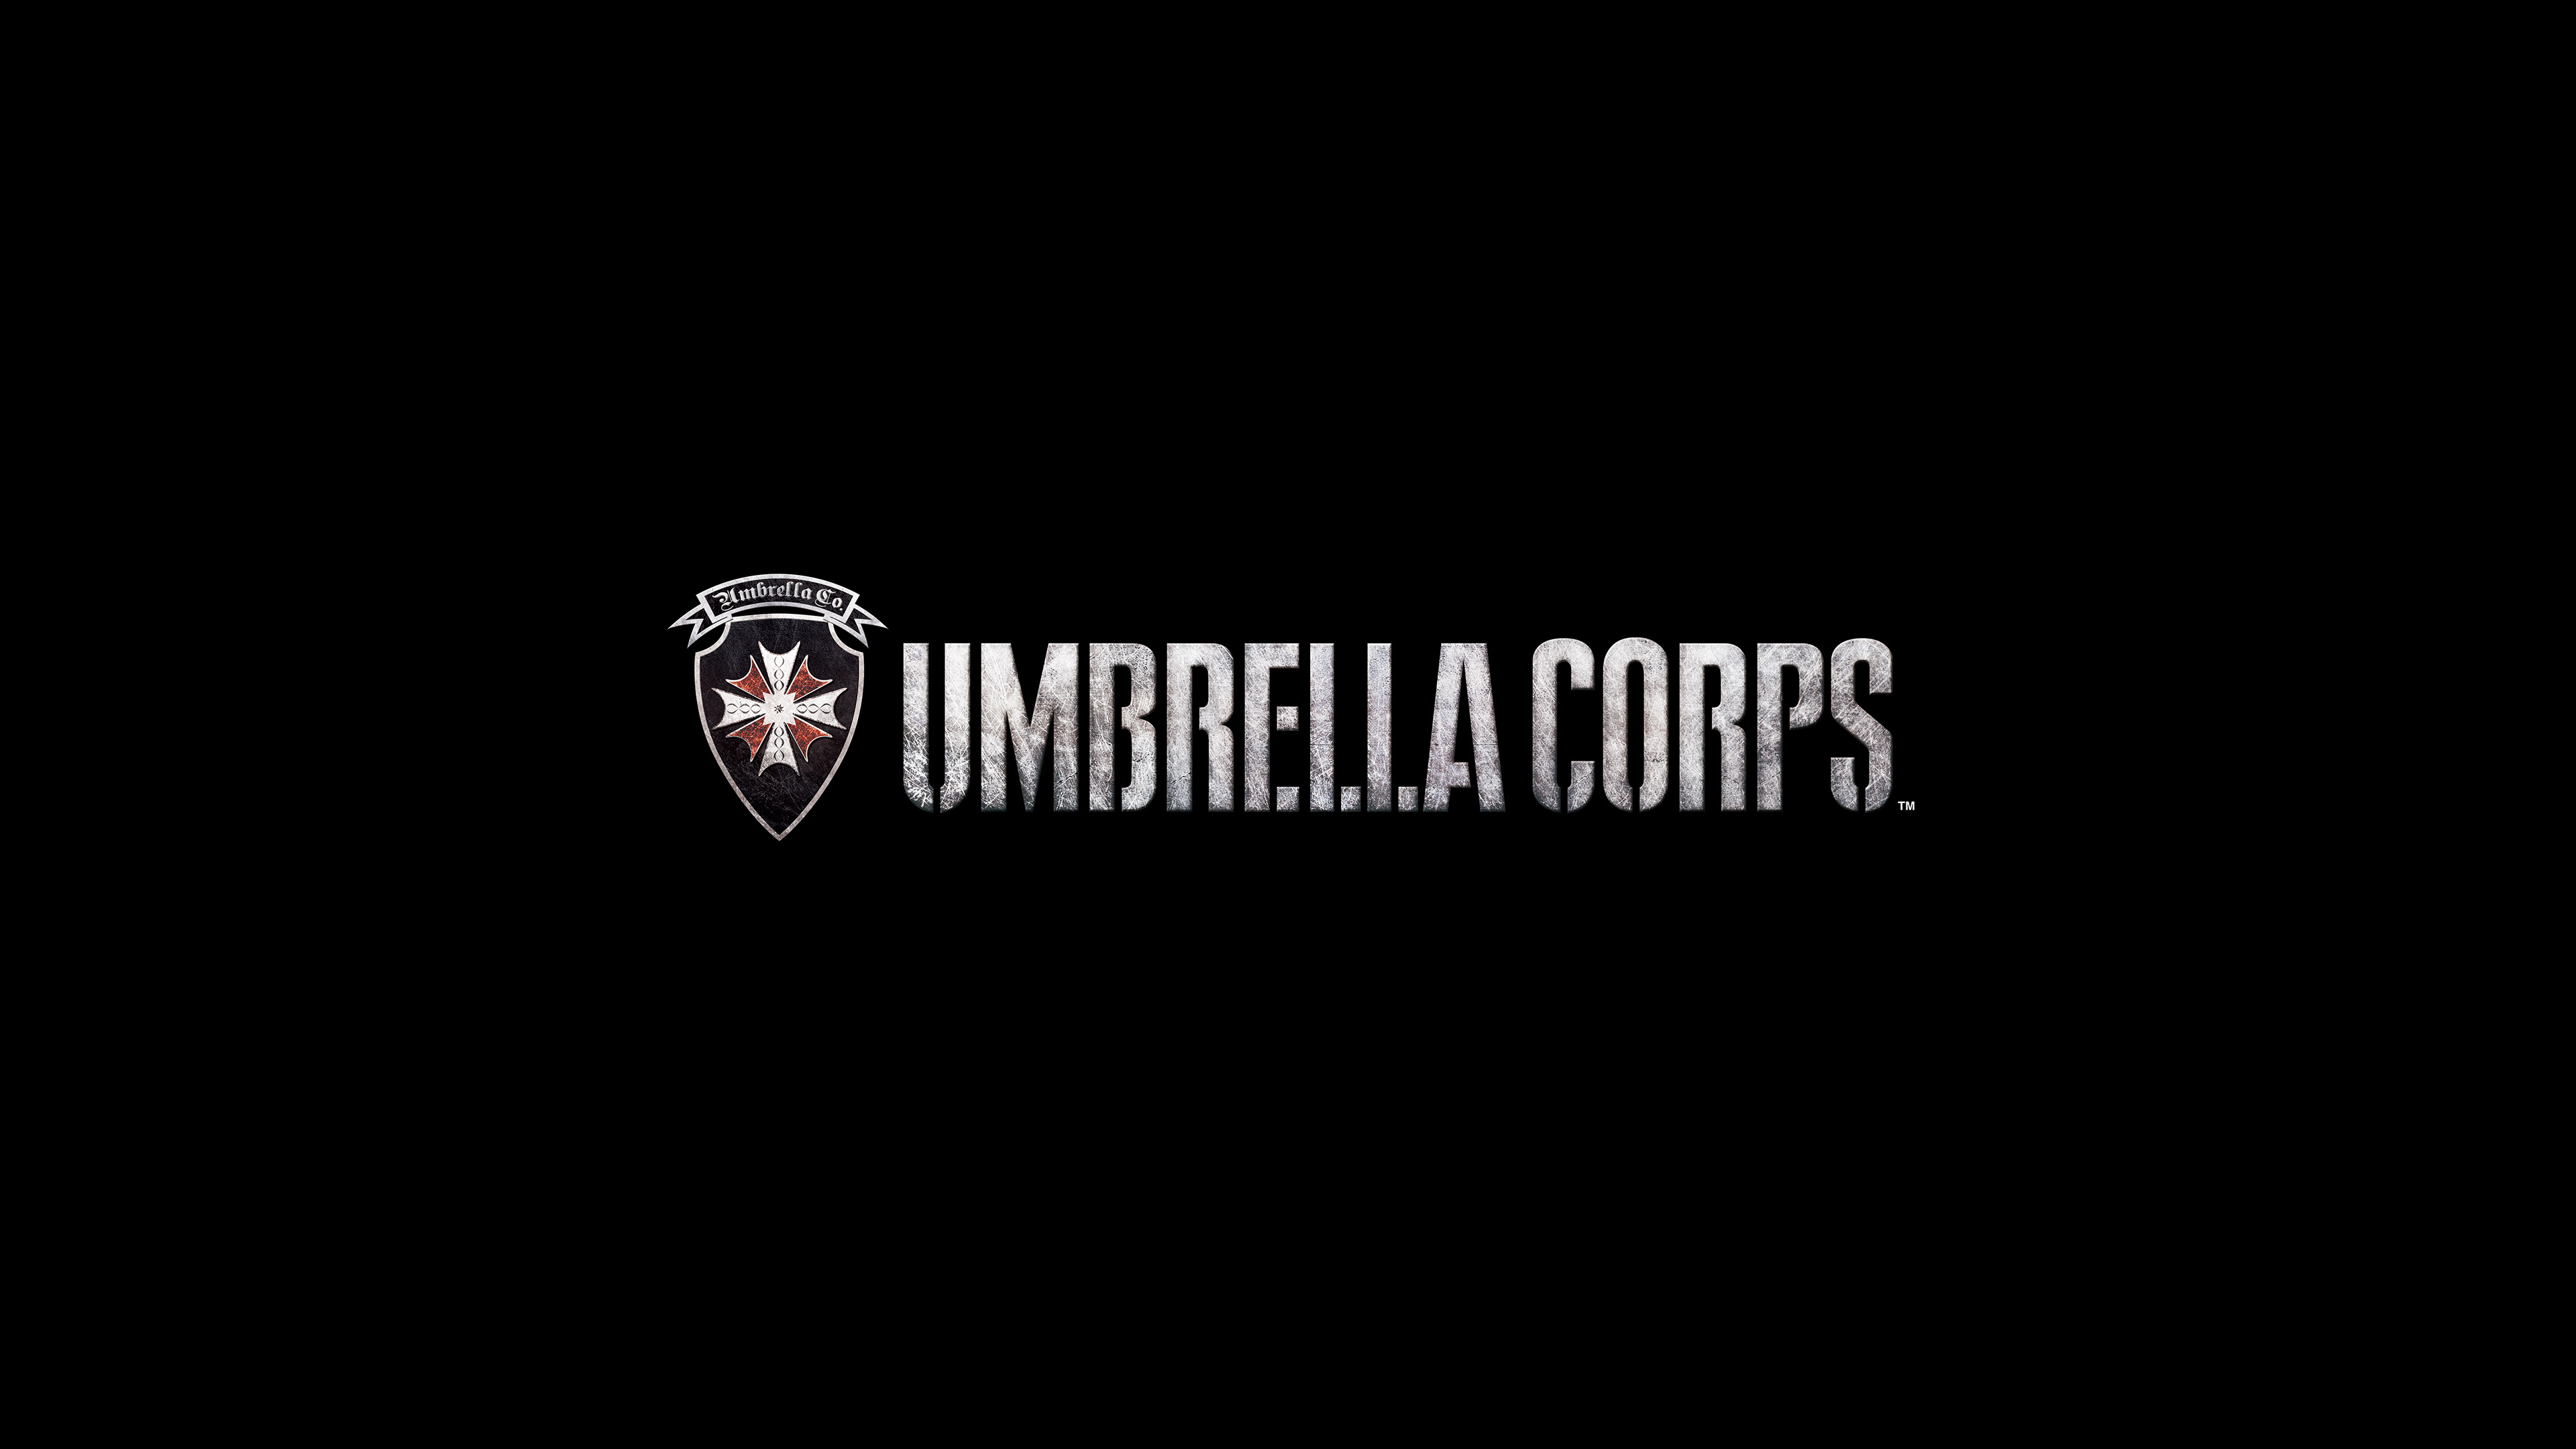 Umbrella corps logo hd games 4k wallpapers images backgrounds umbrella corps logo voltagebd Images